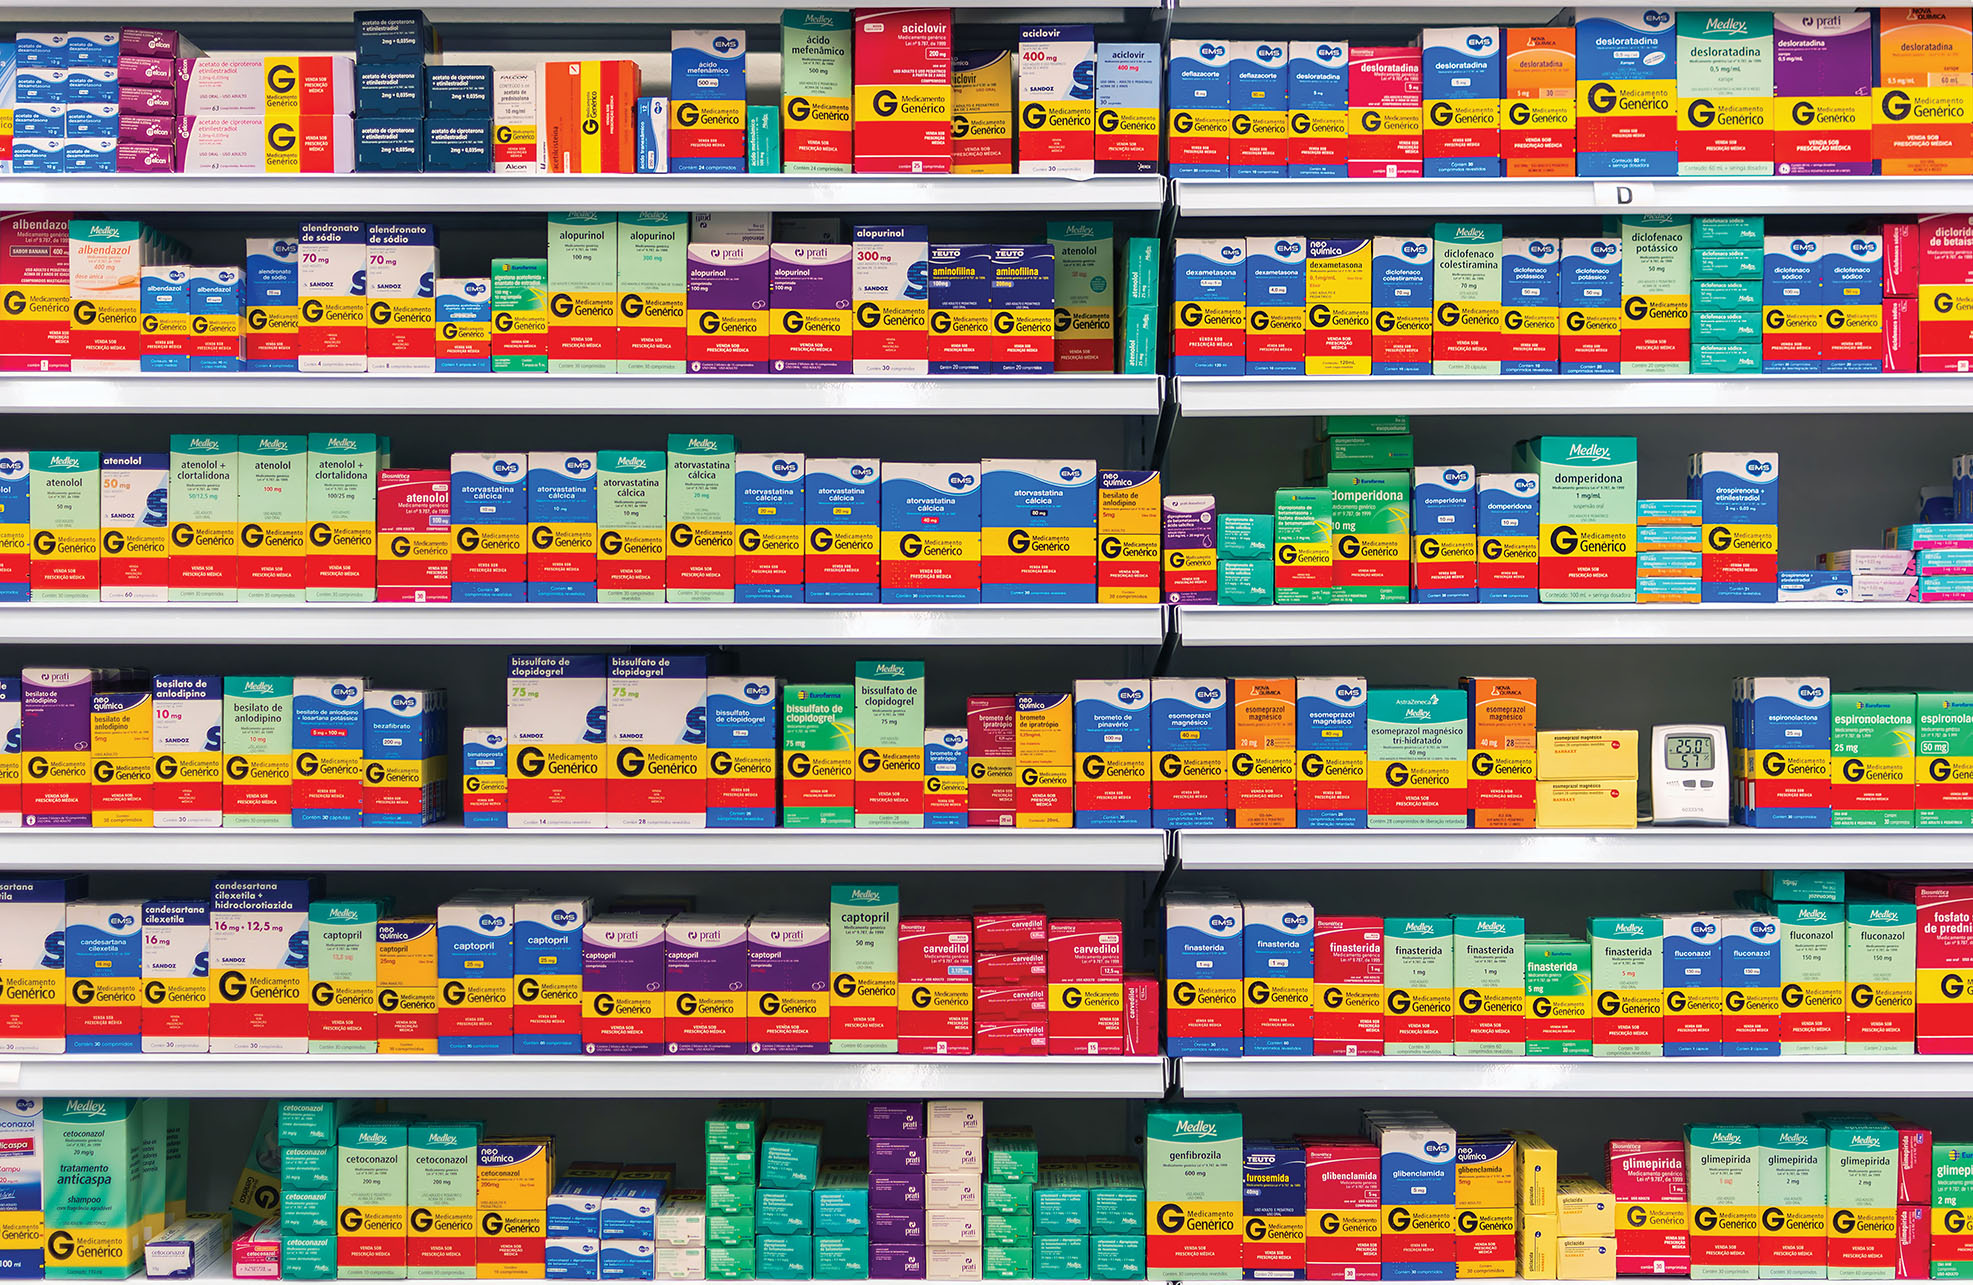 Generic drugs on display in a pharmacy in Brazil. (Photo by Wilfredor.)